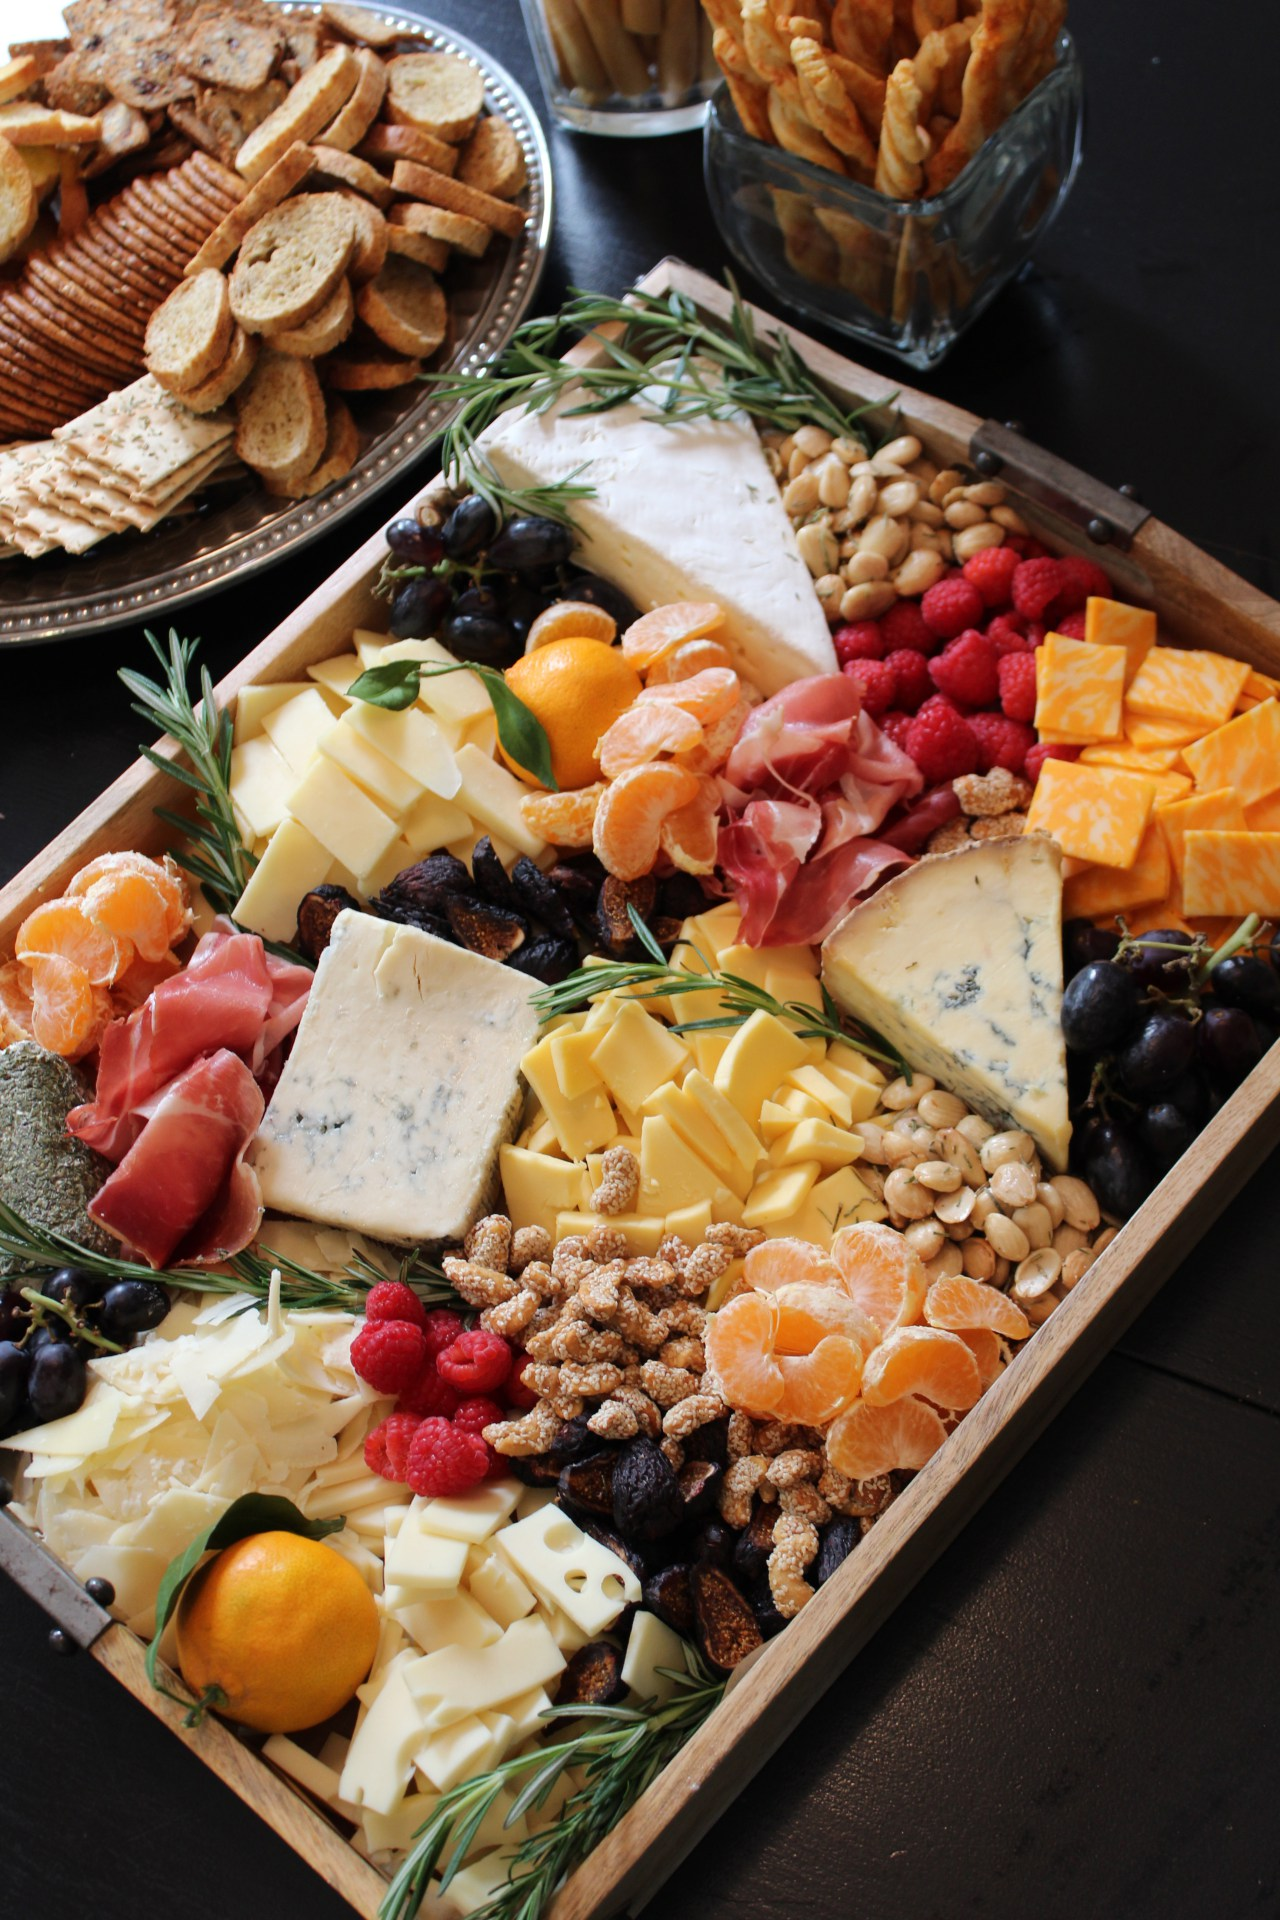 Cheese board - this is always a party favorite. The mixture of the cheese, fruit, nuts, and meat gives a little something for everyone.